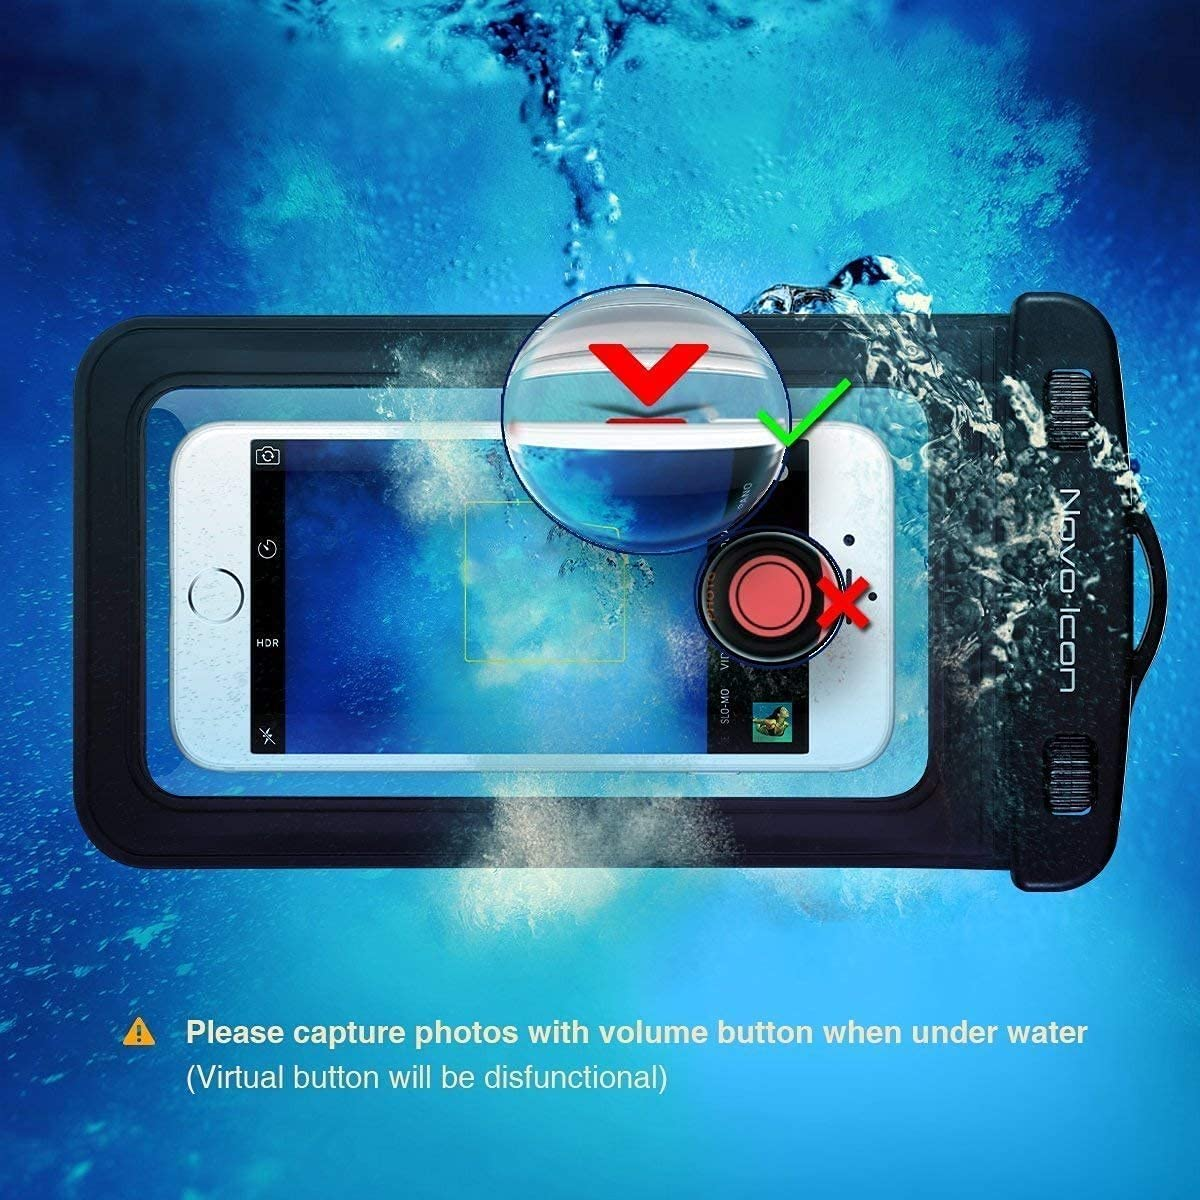 Novo Icon TPU Waterproof Phone Pouch Fully Transparent, IPX8 Cellphone Pouch, Cell Phone Dry Bags, Up to 7'' for iPhone 12 11 Pro Max XS XR X Plus, Galaxy S20+ S10 S9 Note20, (Black )